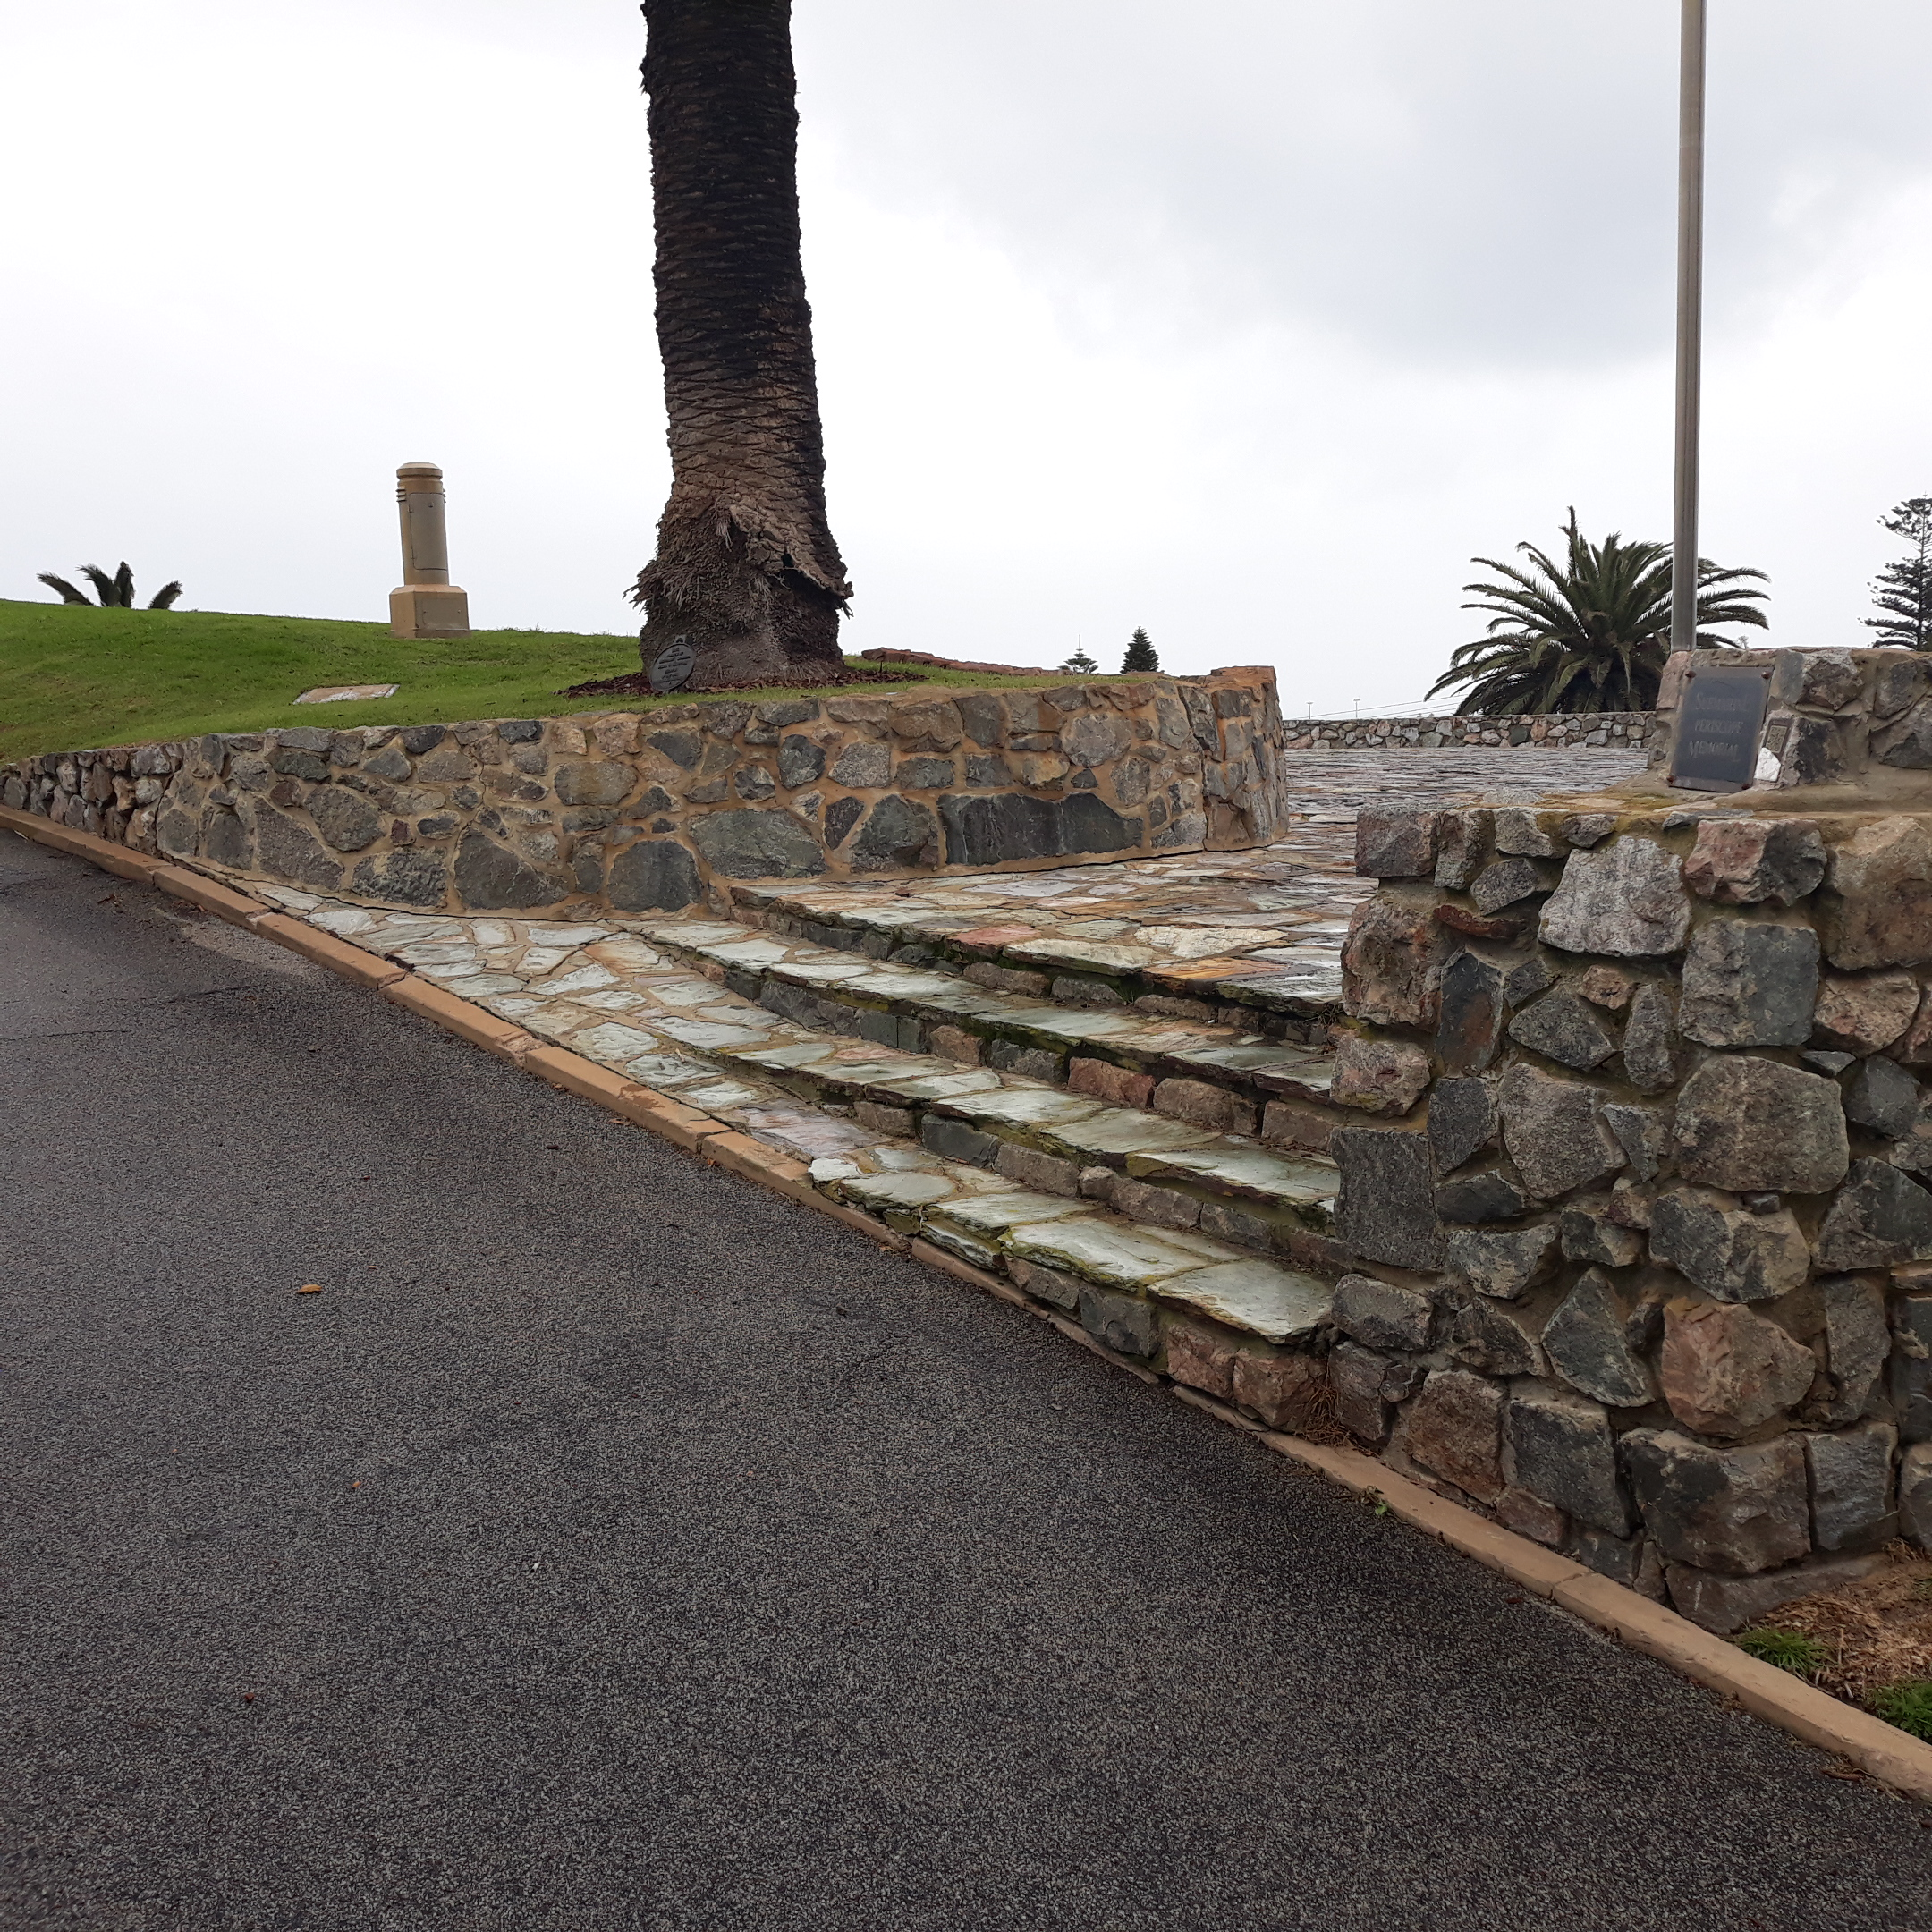 Stairs leading to the periscope monument